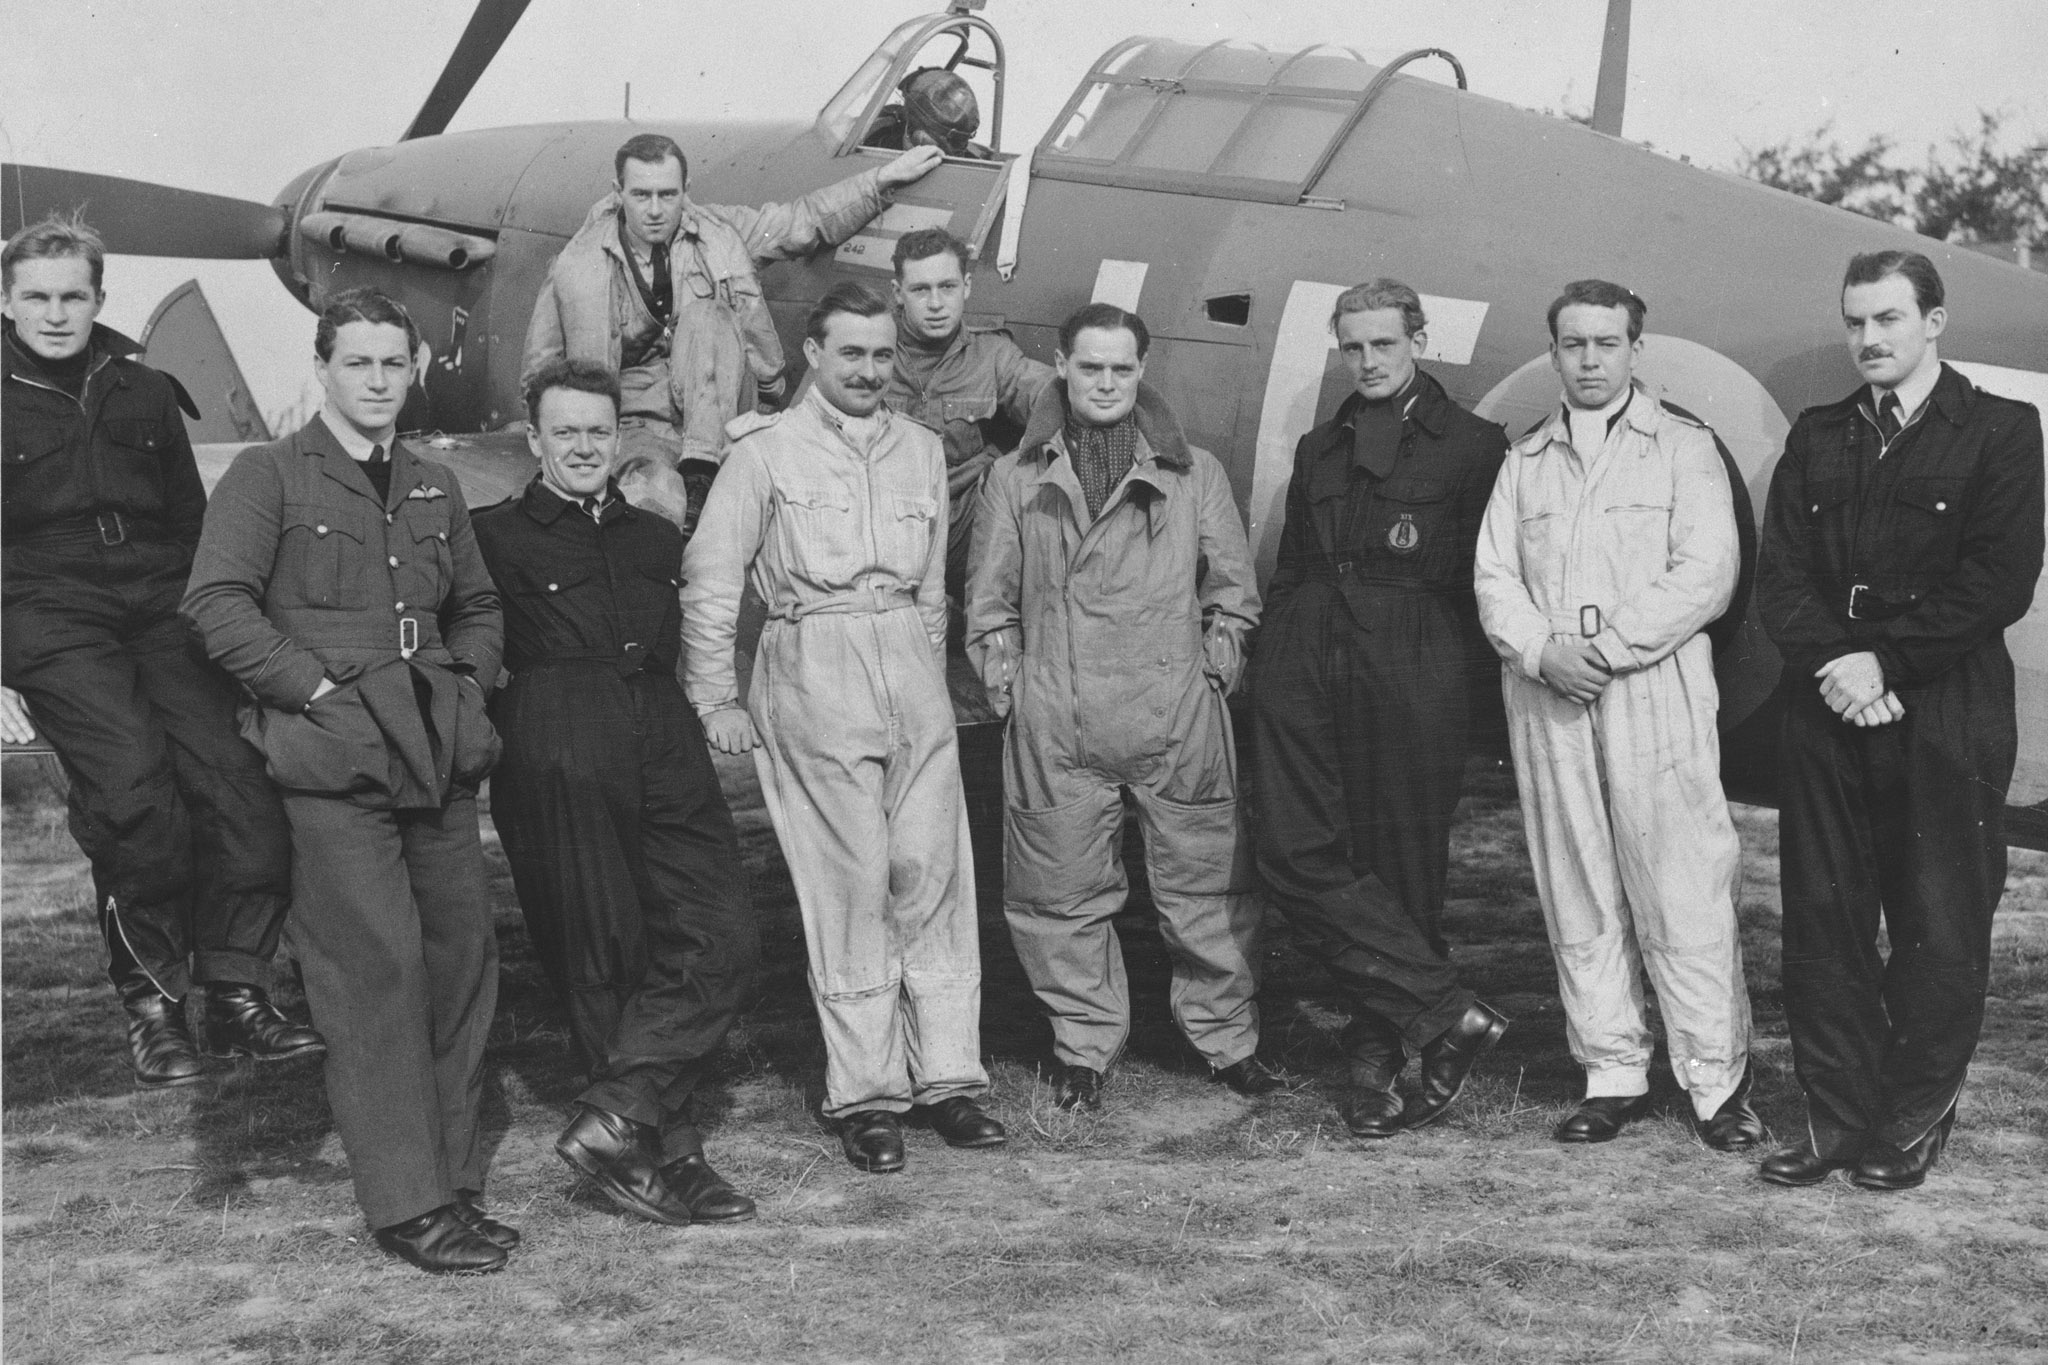 A group of men in various uniforms stand in front of a single propeller aircraft.